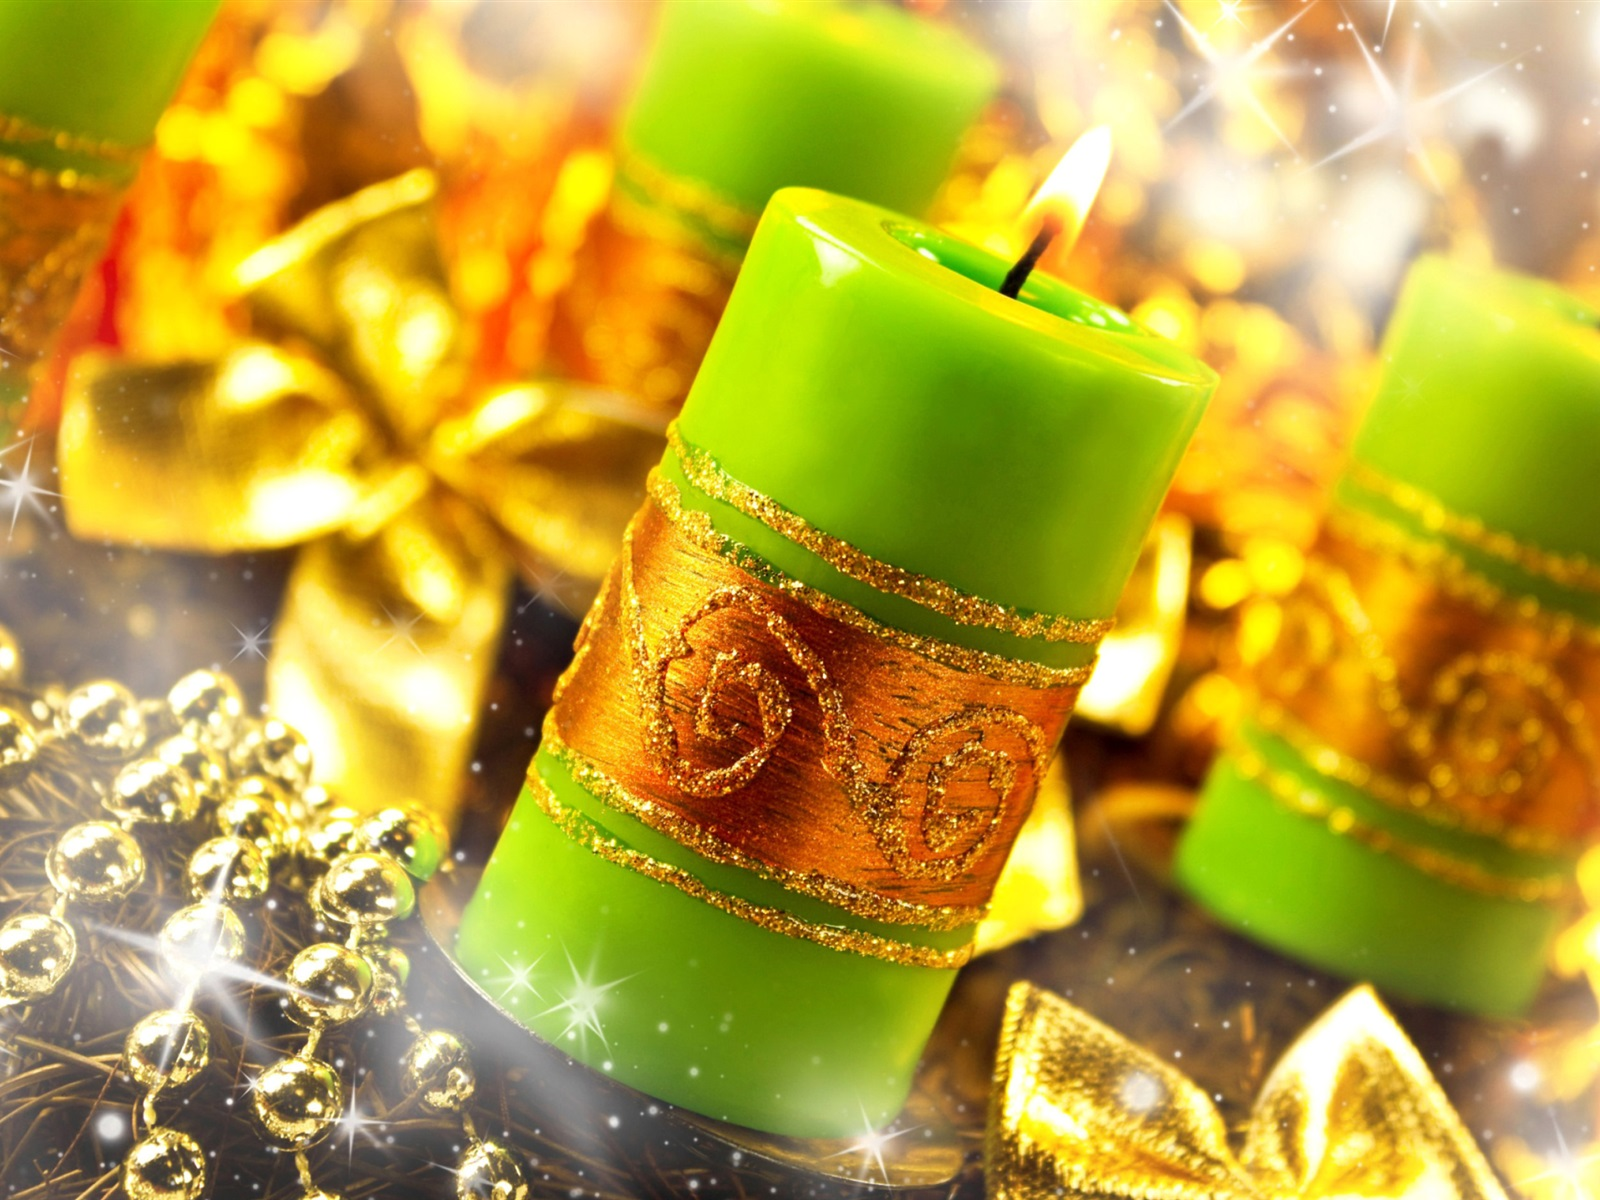 Simple Wallpaper Fire Gold - Green-candles-flame-fire-gold-style-Christmas-decoration_1600x1200  Trends_182221 .jpg